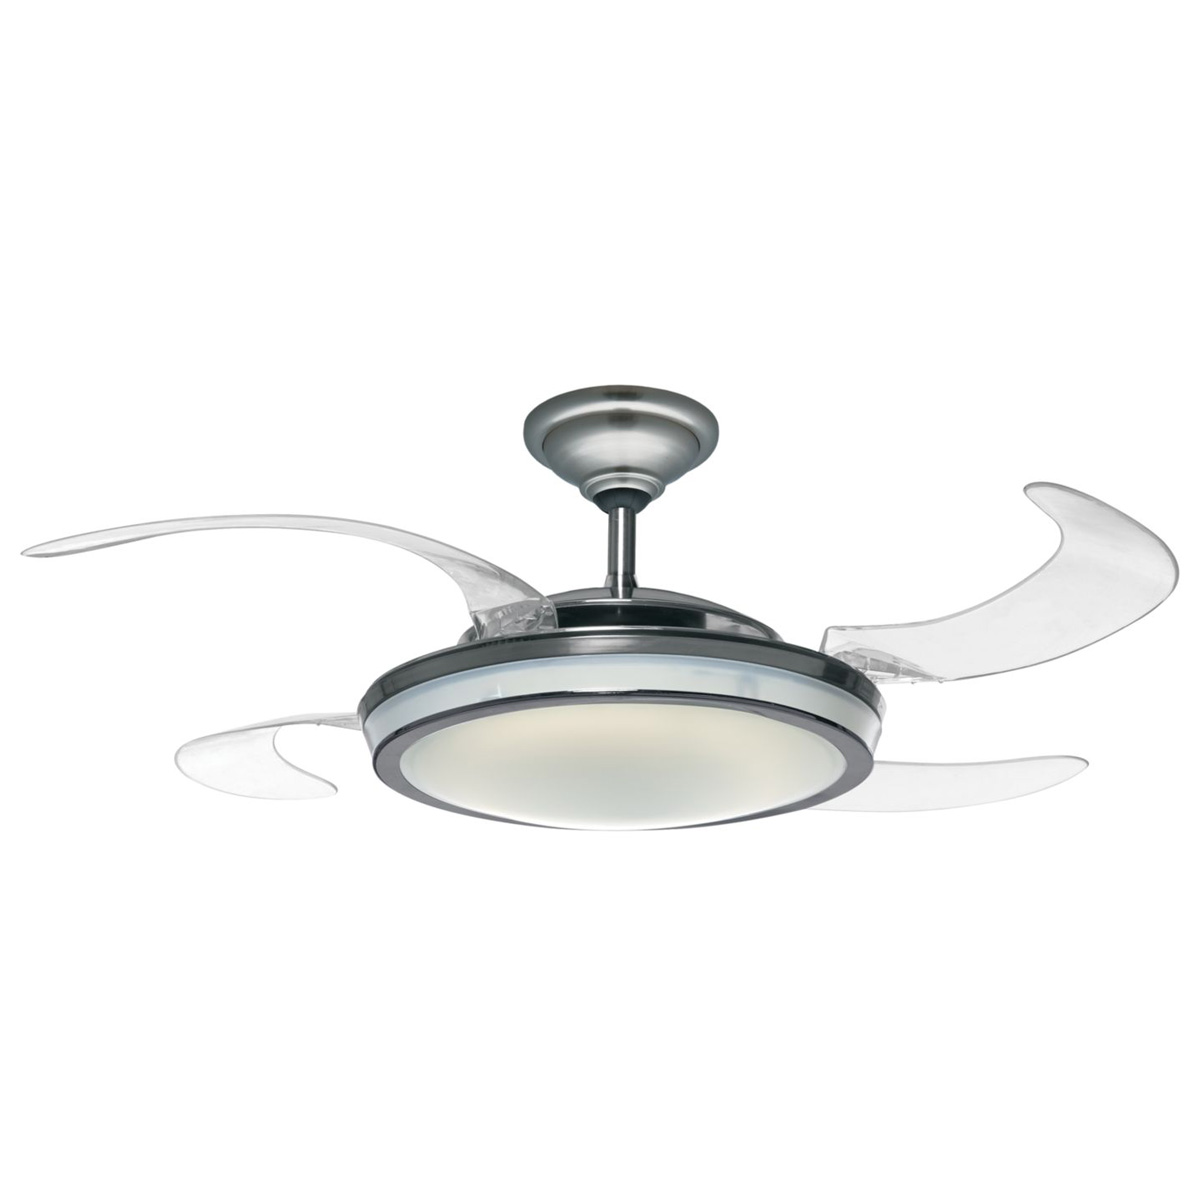 Hunting trip a look at the earlier hunter ceiling fan light hunter ceiling fan light photo 8 aloadofball Choice Image